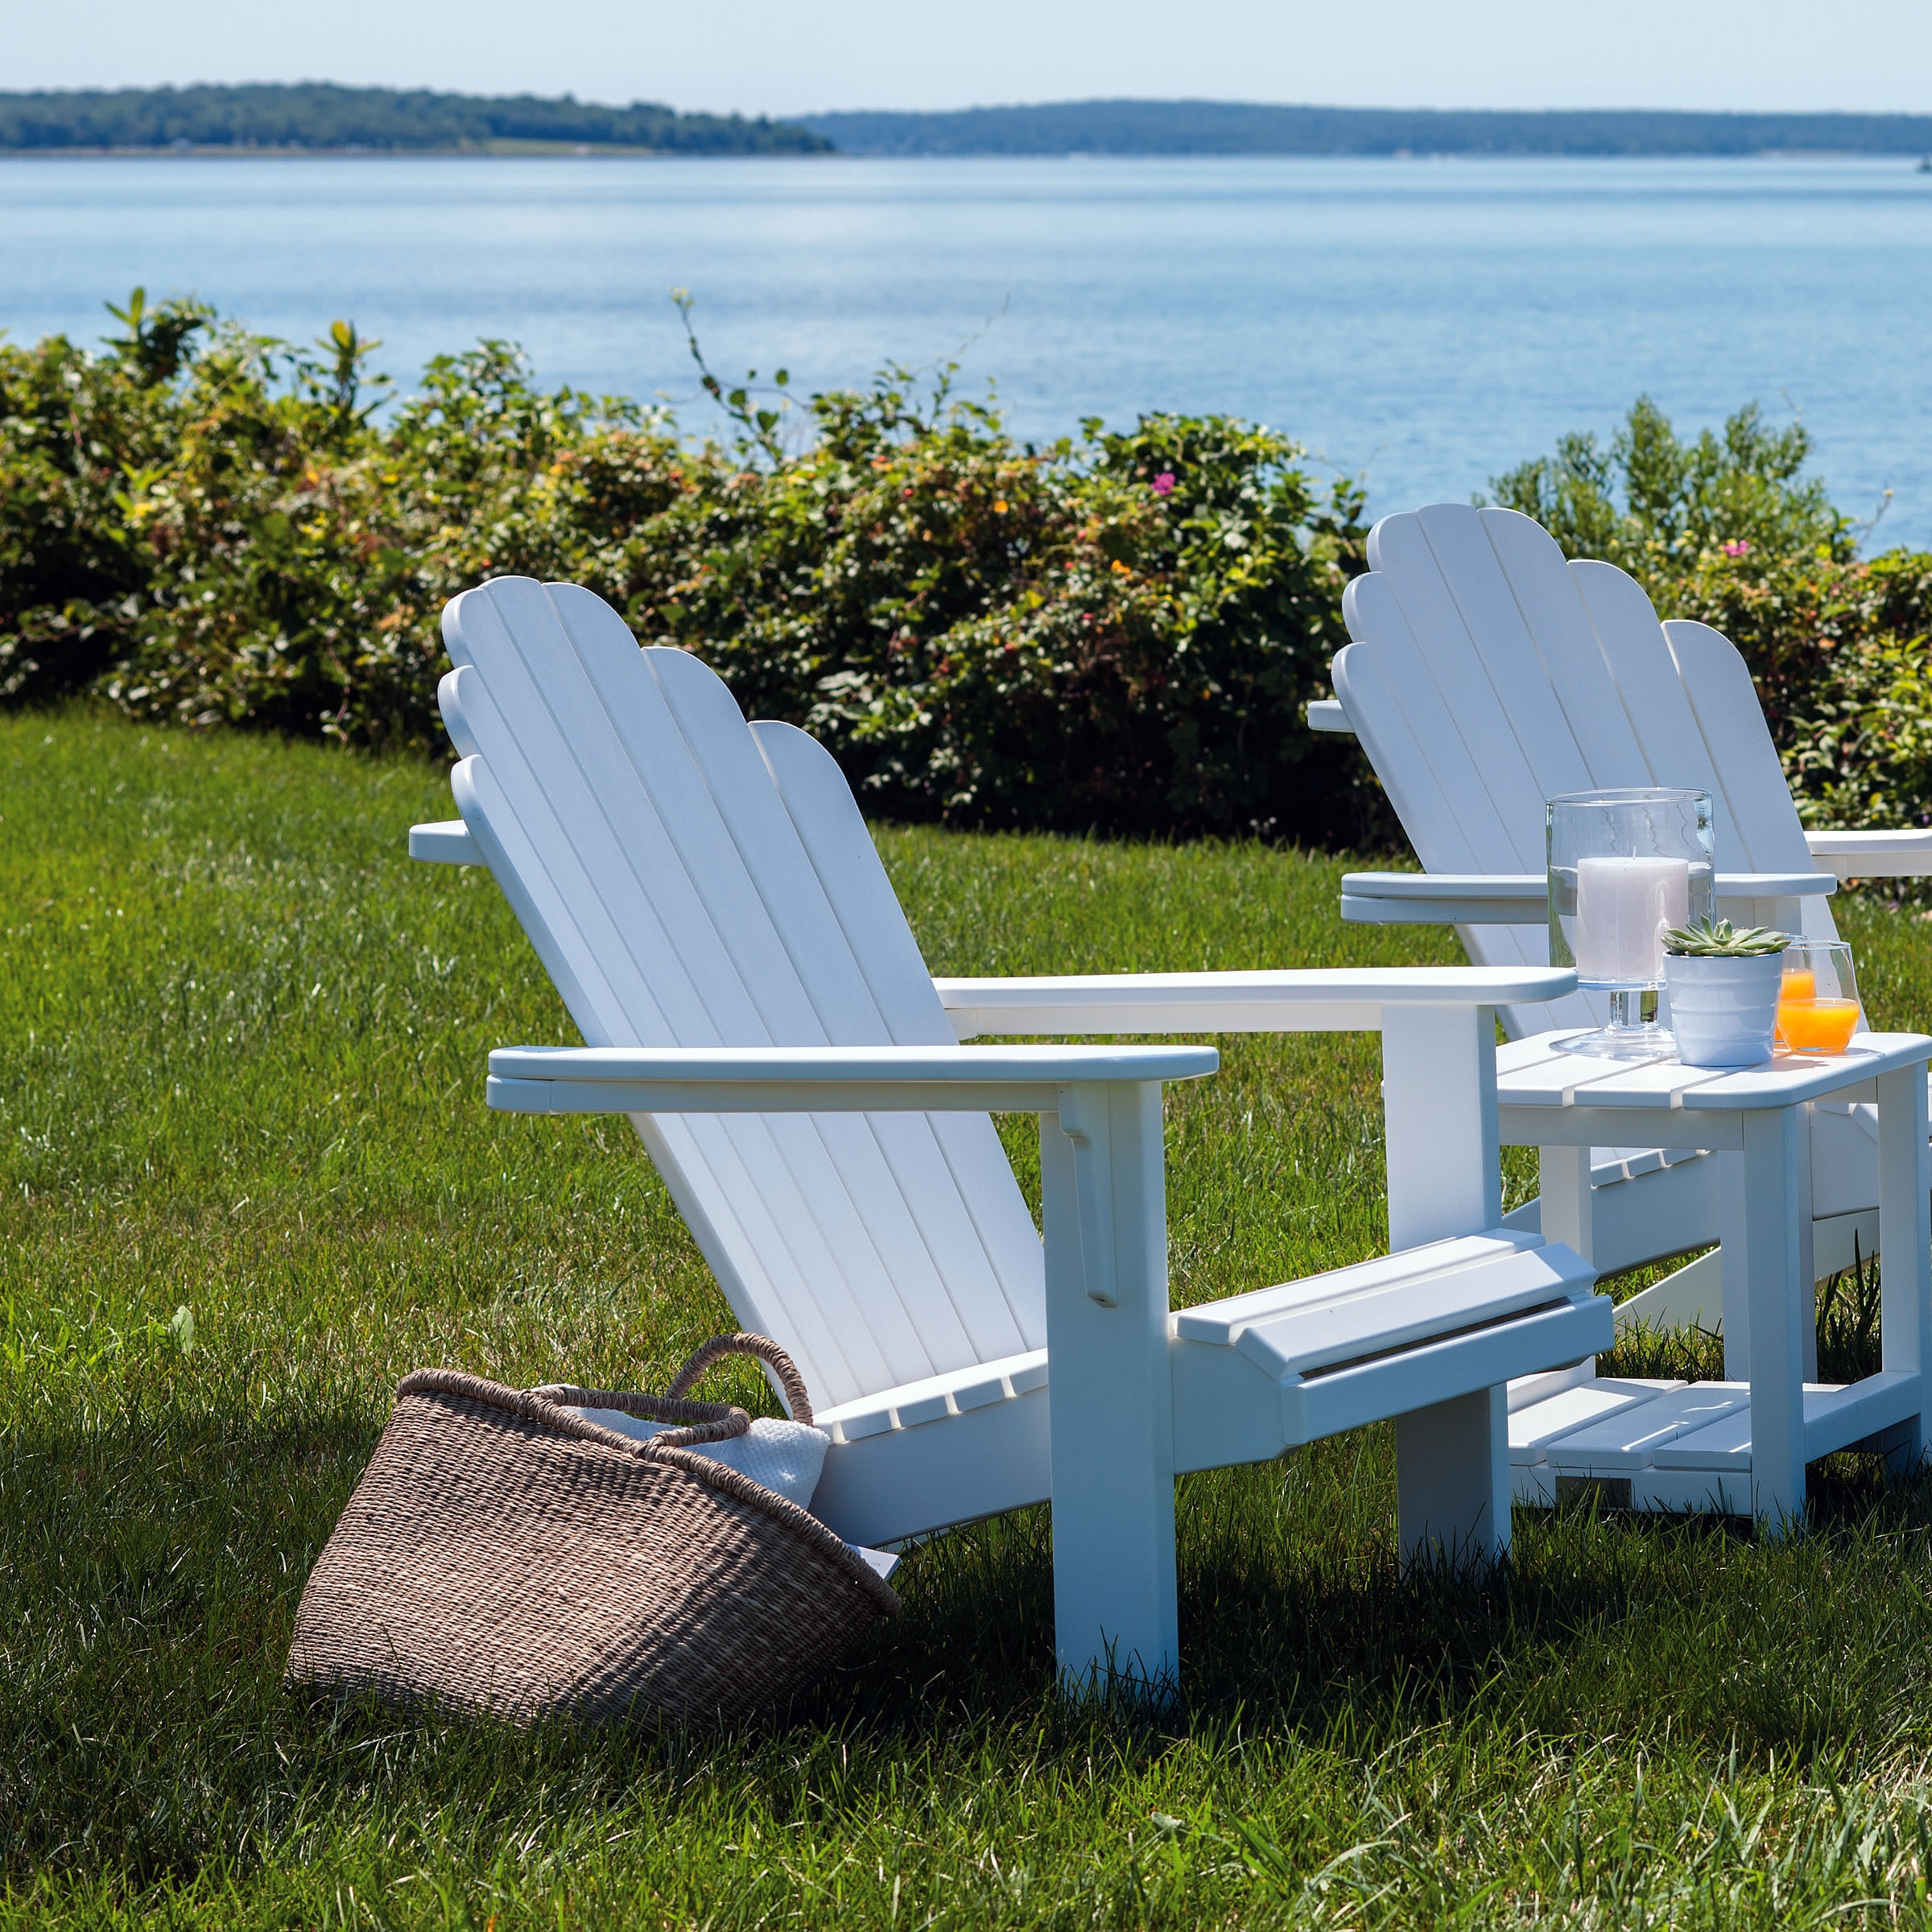 Malibu Outdoor Hampton Adirondack Chair